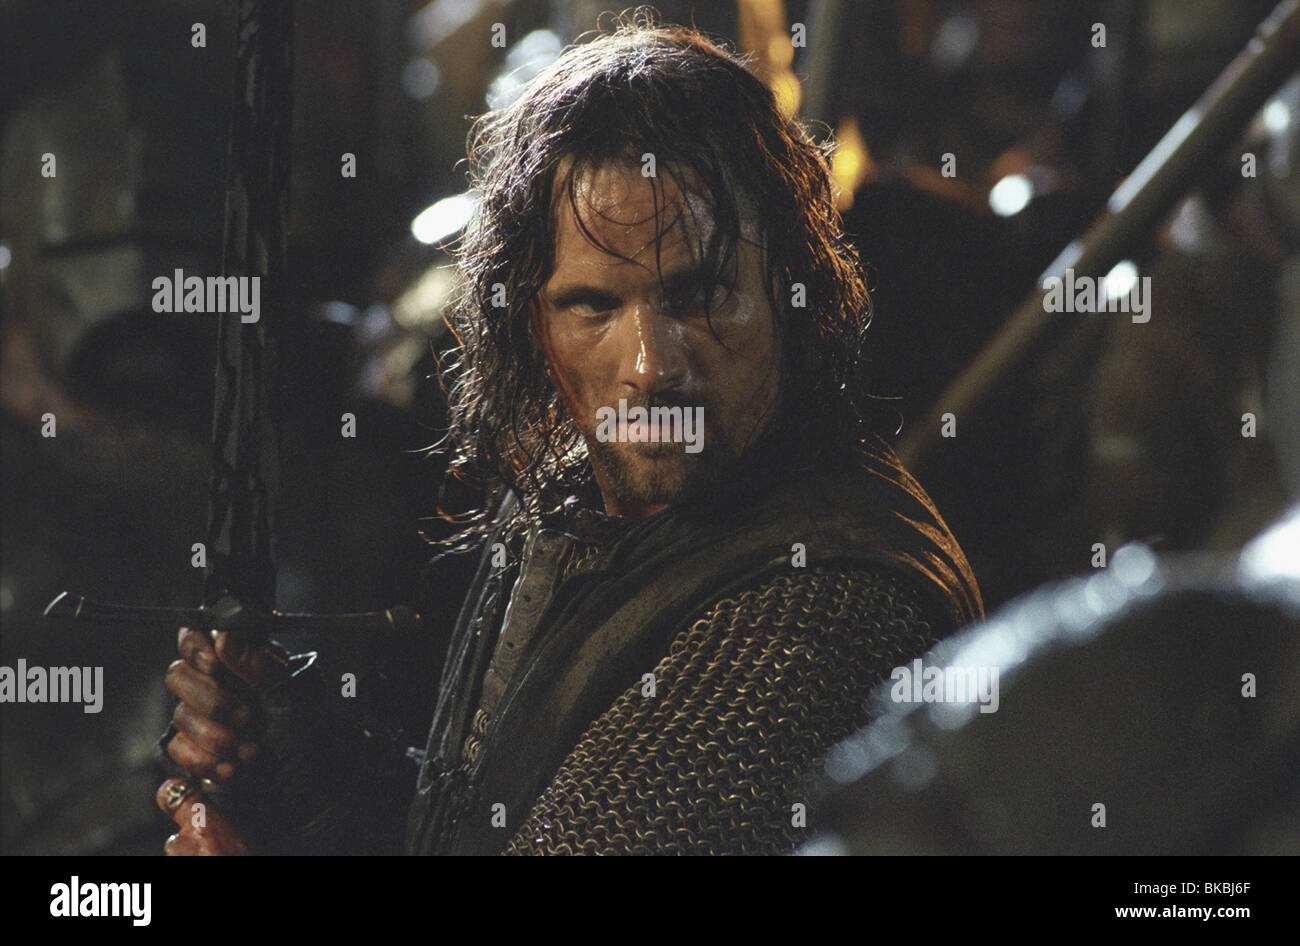 The Lord Of The Rings The Two Towers 2002 Viggo Mortensen Aragorn Stock Photo Alamy